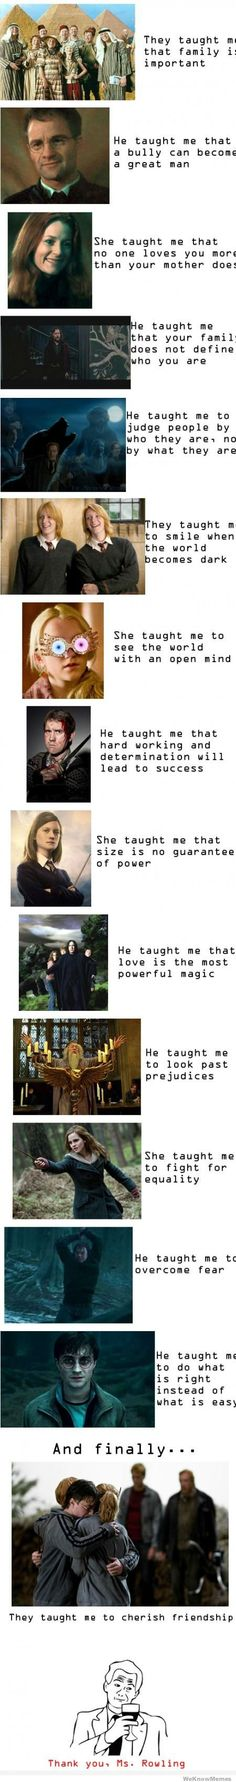 Things Harry Potter taught me...this is absolutely true. and these are the reasons HP is so amazing. and on top of HP being an amazingly wonderful story, these are the reasons i love HP so much!